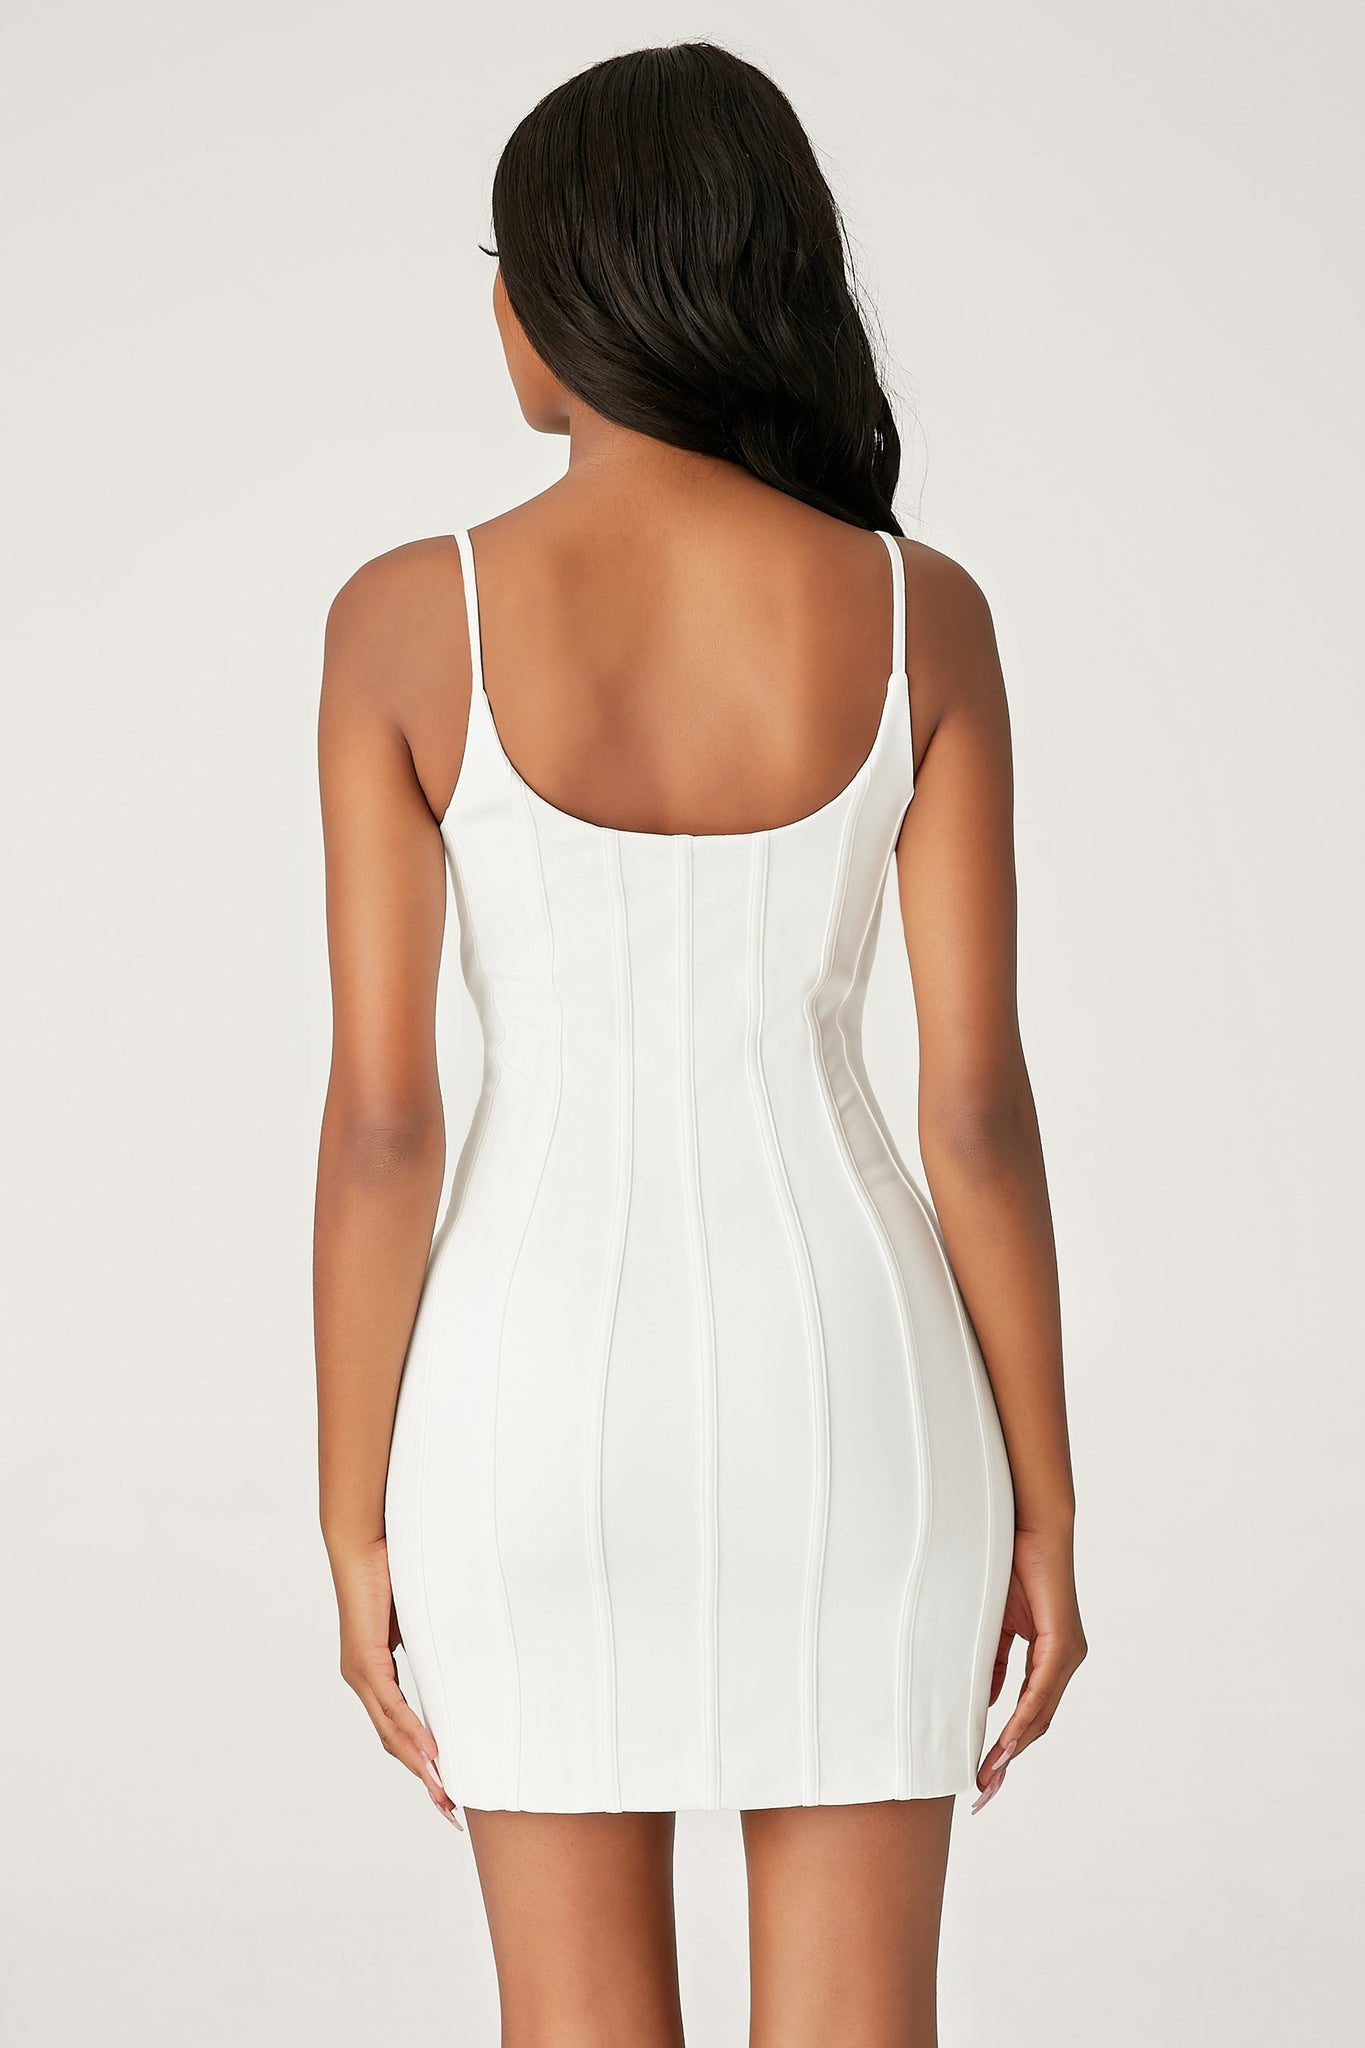 Romily Panelled Bodycon Mini Dress - White - MESHKI